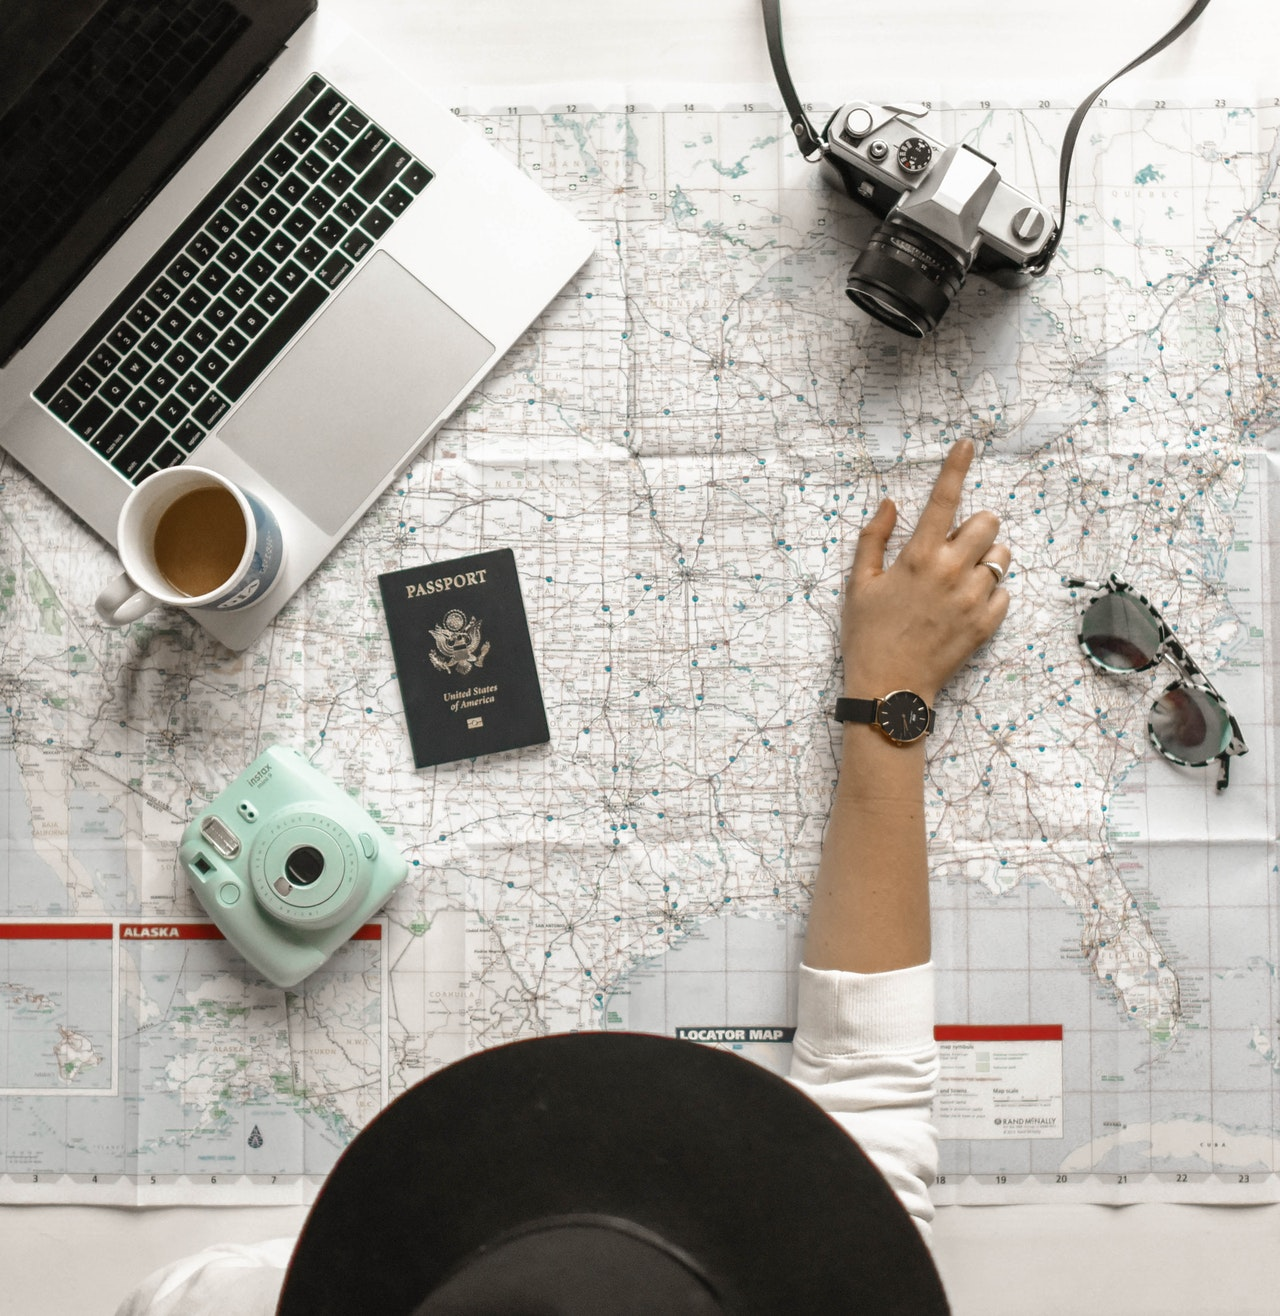 How to Find the Best Flight Deals